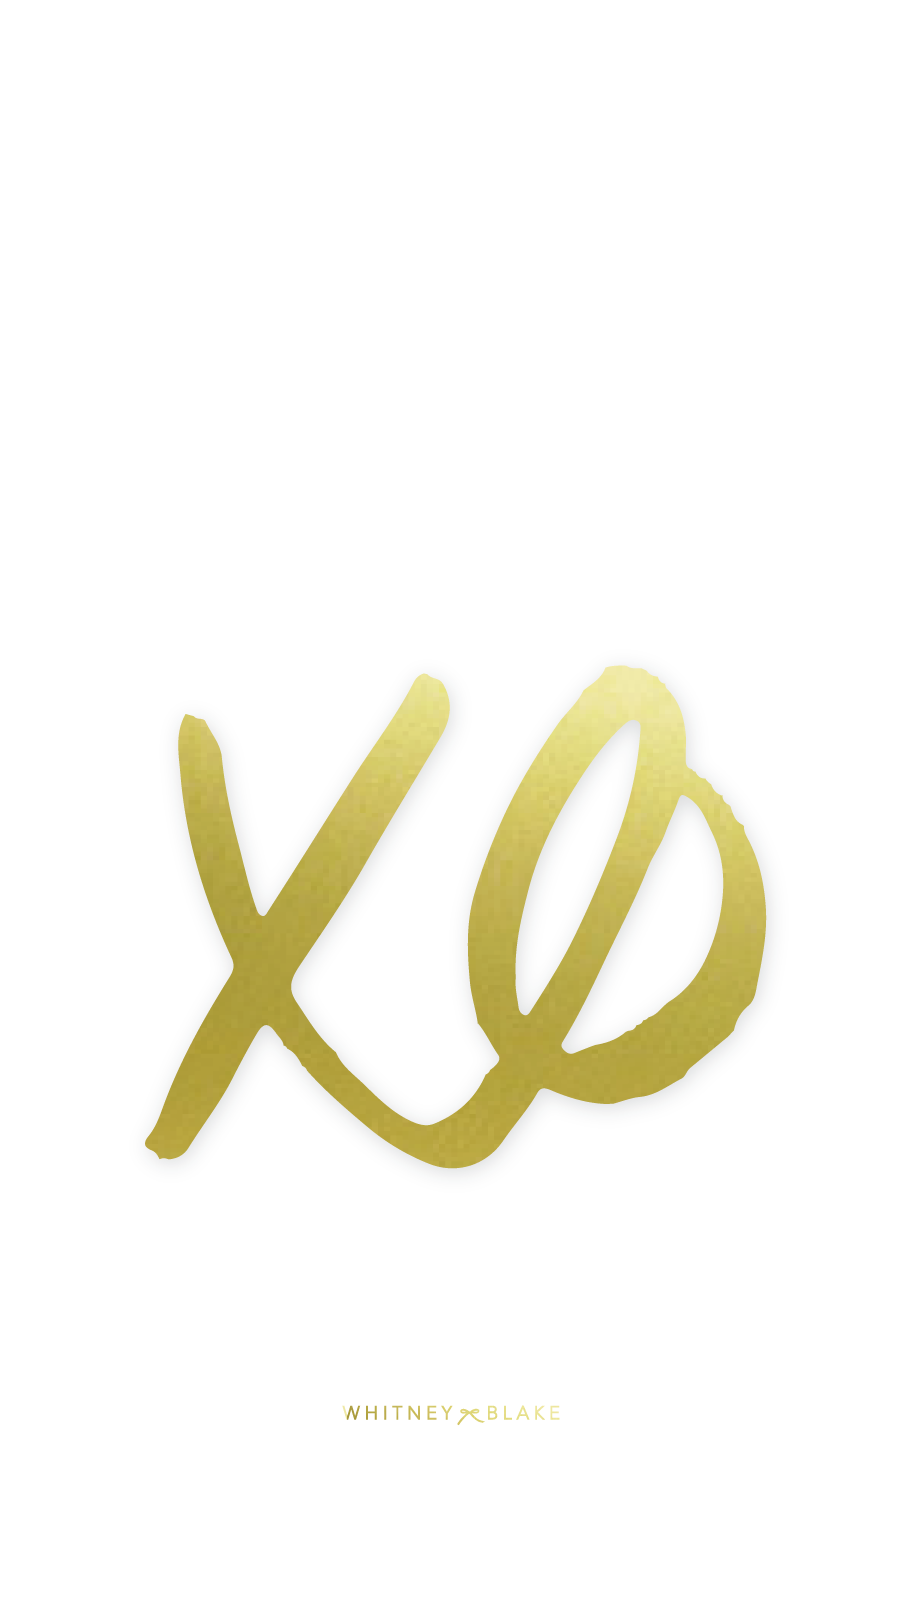 Xo Wallpaper Freebie Whitney Blake